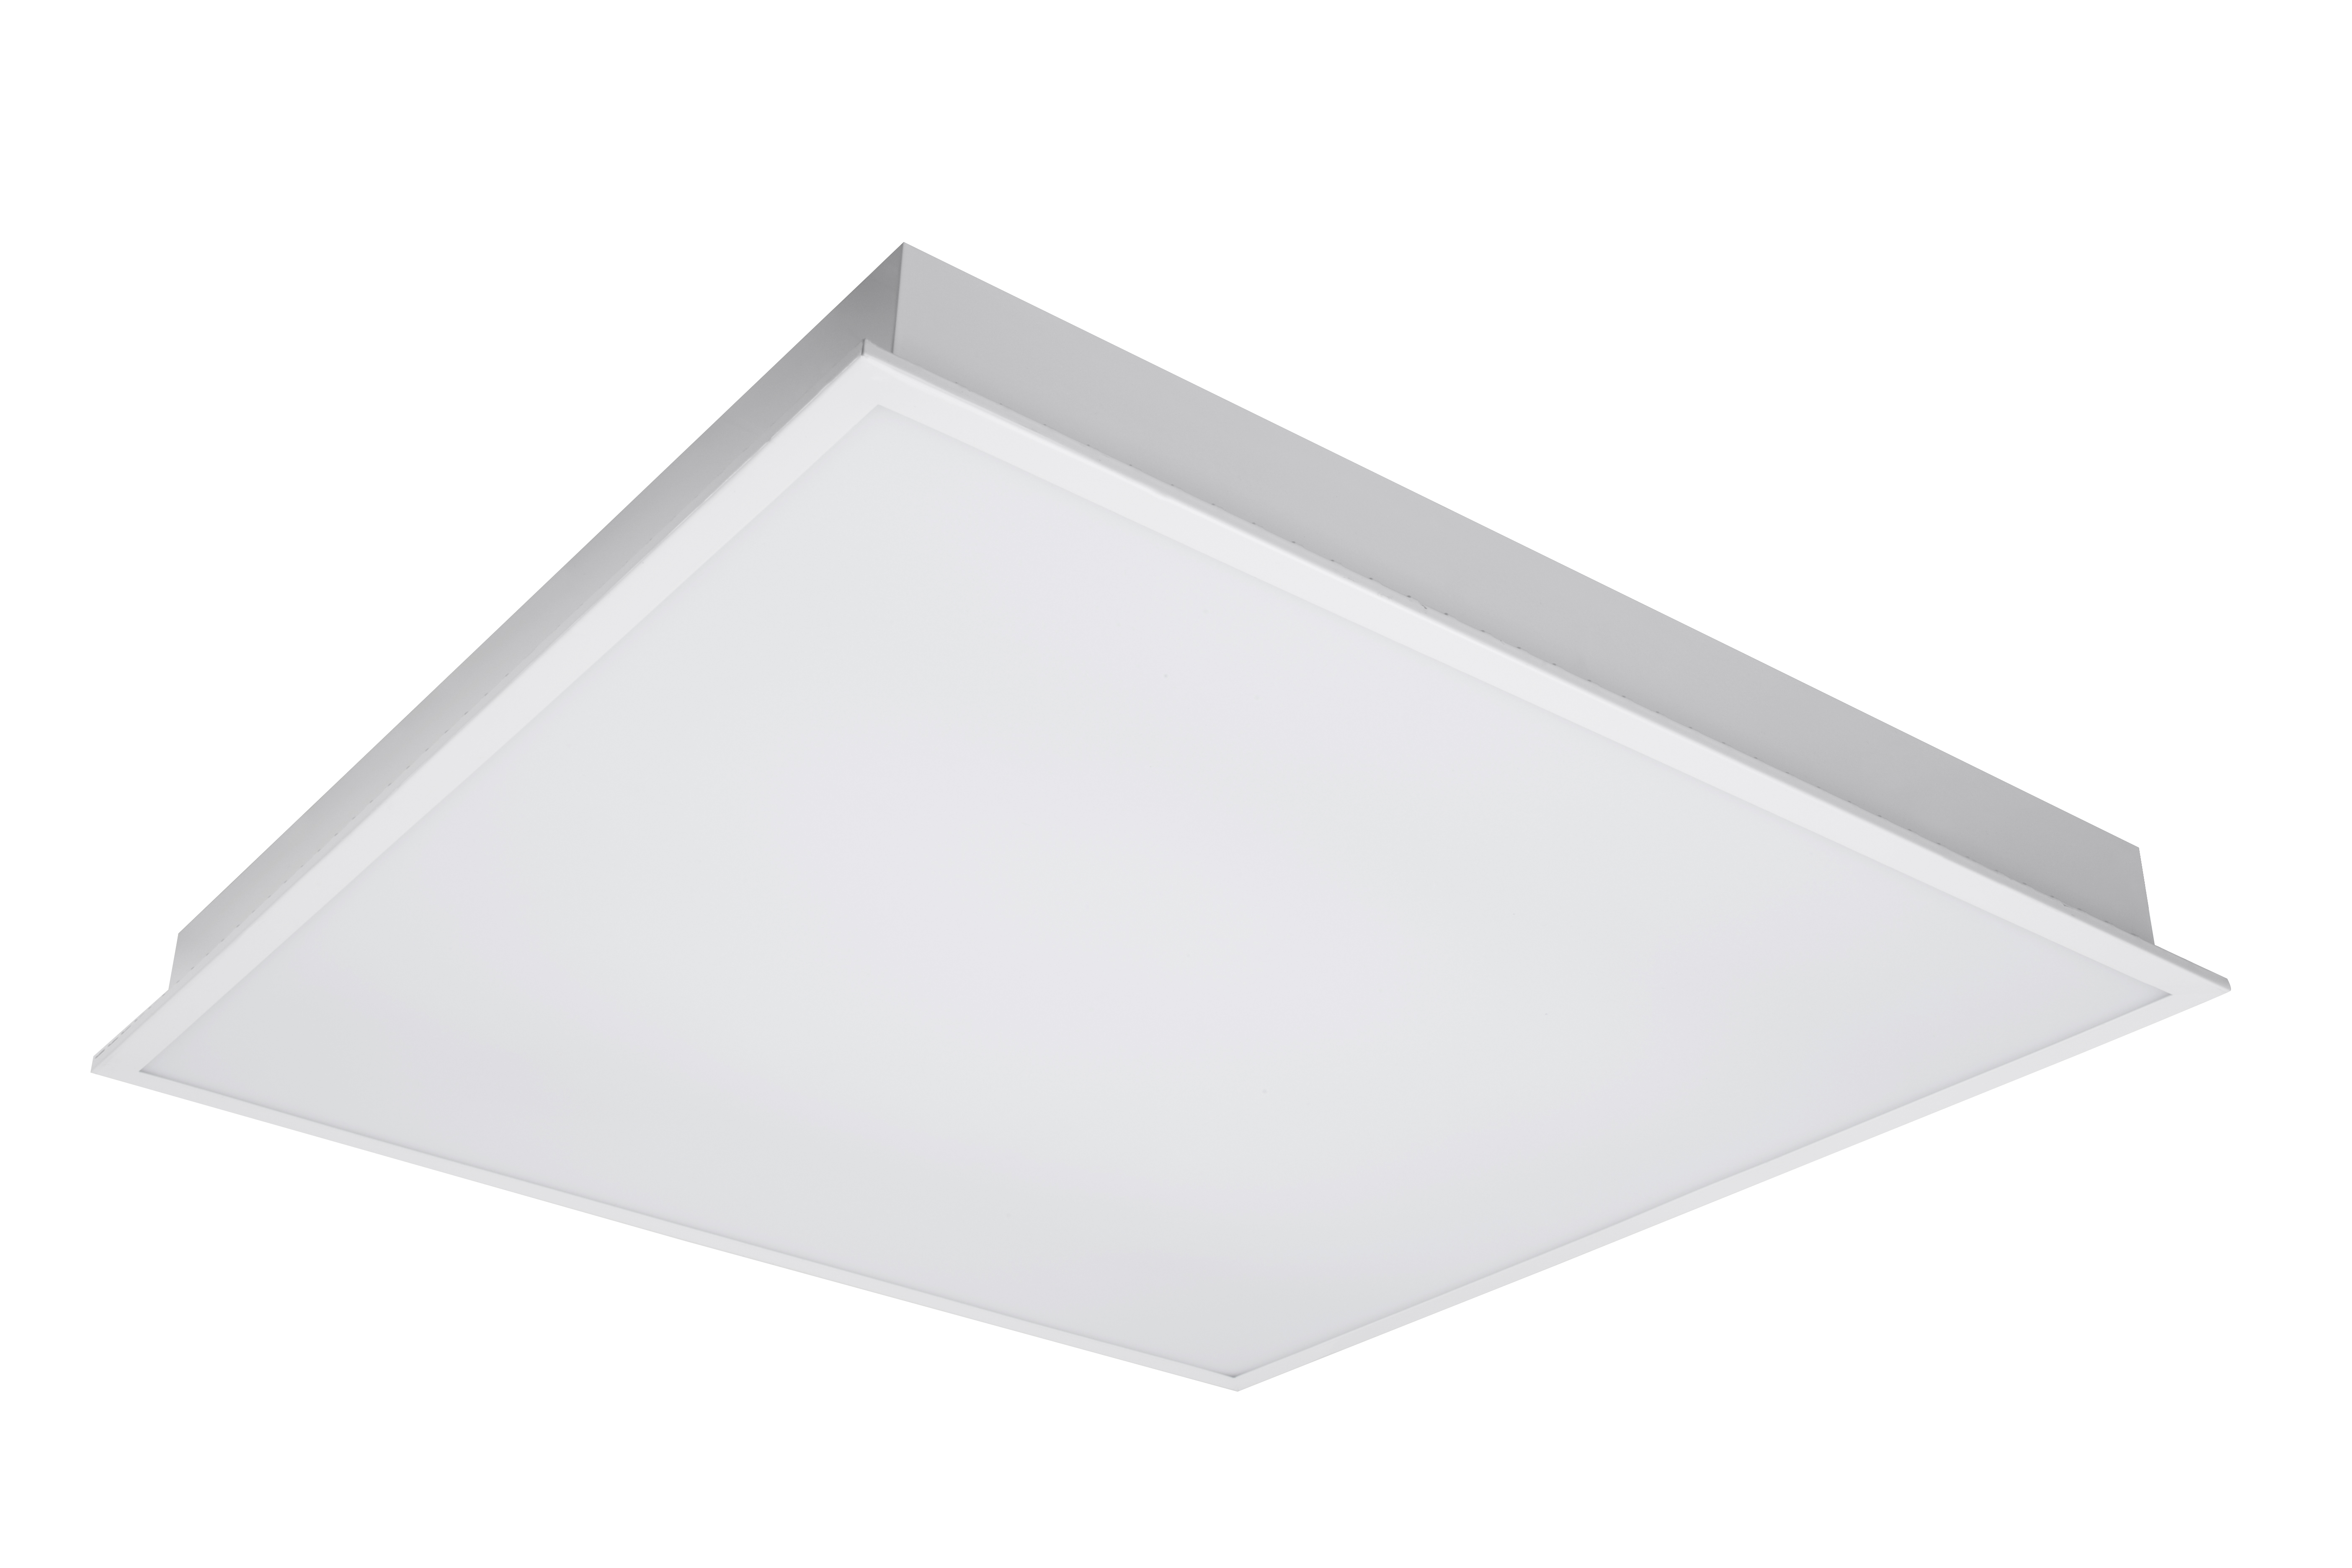 22FPL30/840/LED 81900 LED FLAT PANEL 2X2 30W 4000K 0-10V DIMMABLE